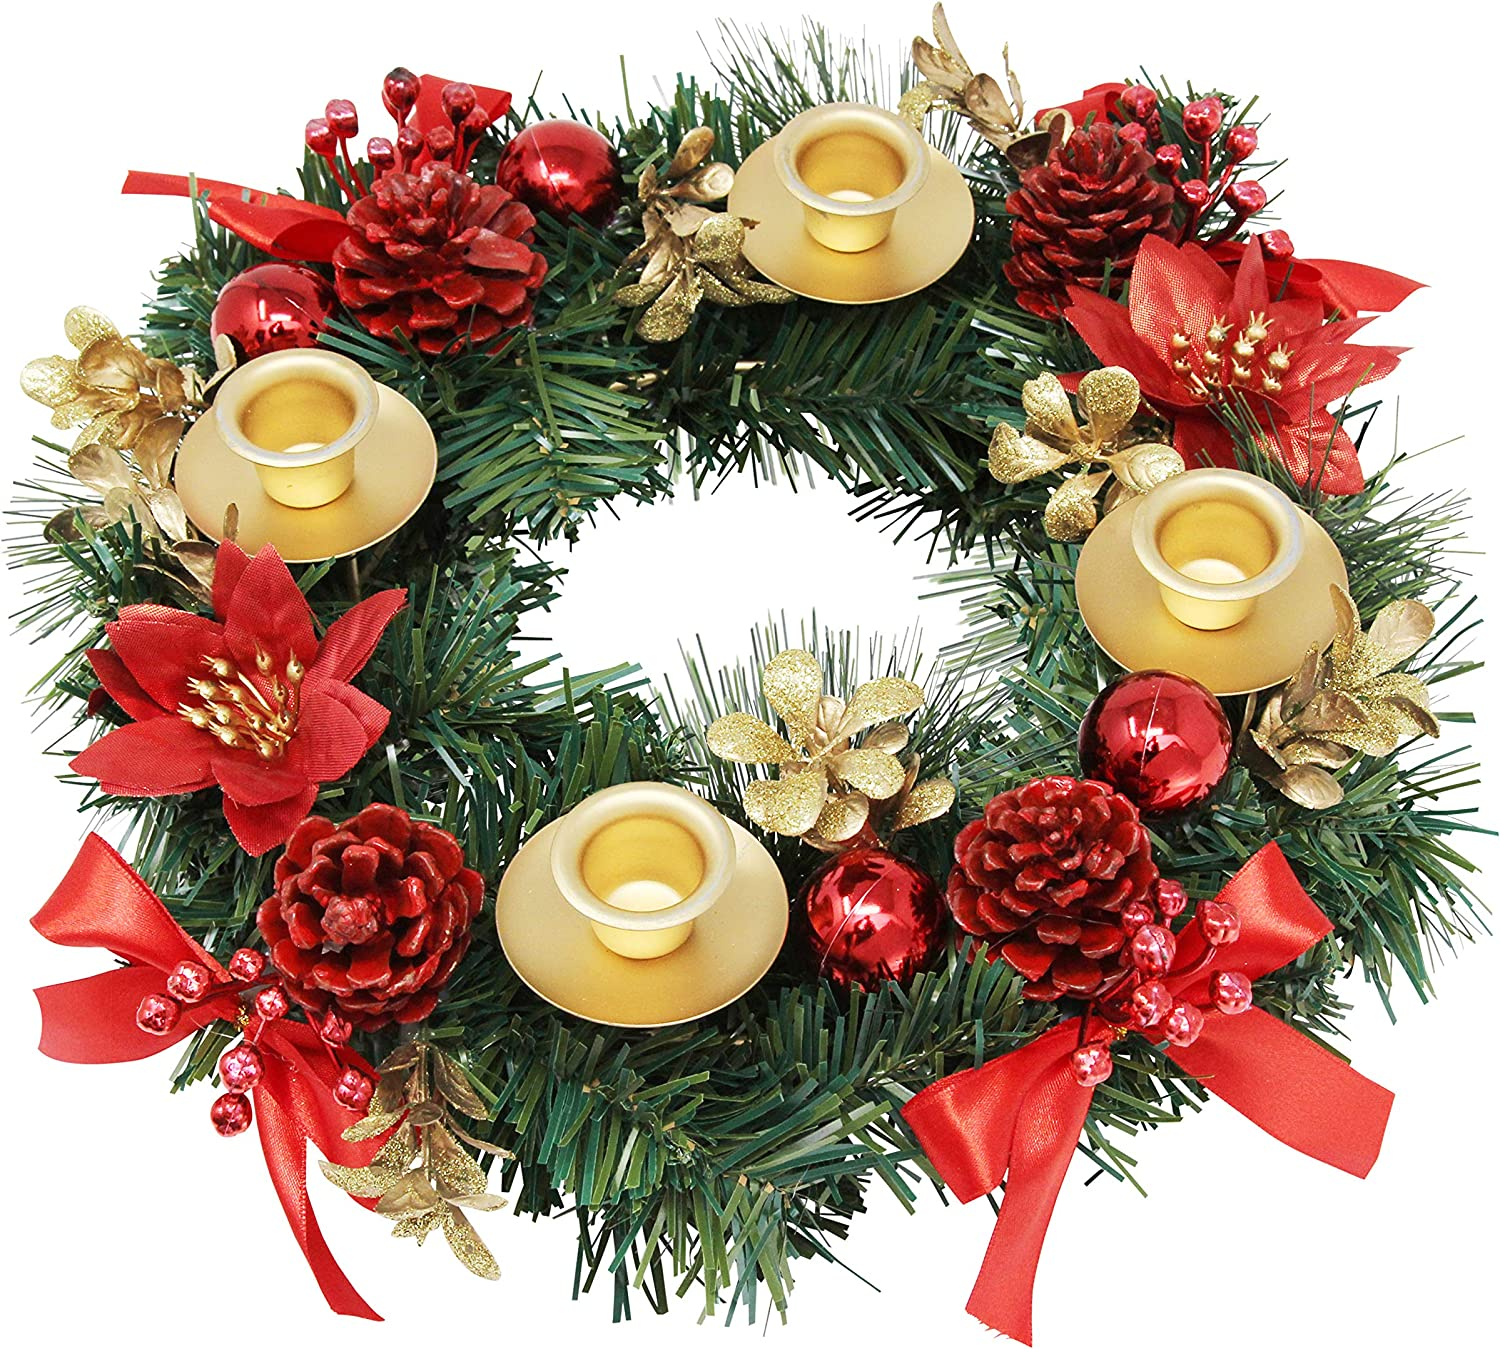 Advent Candle and X-mas Candles Decorations Advent Calendar Season Decoration Christmas Advent Wreath Red Berry Advent Season Centerpiece D/écor